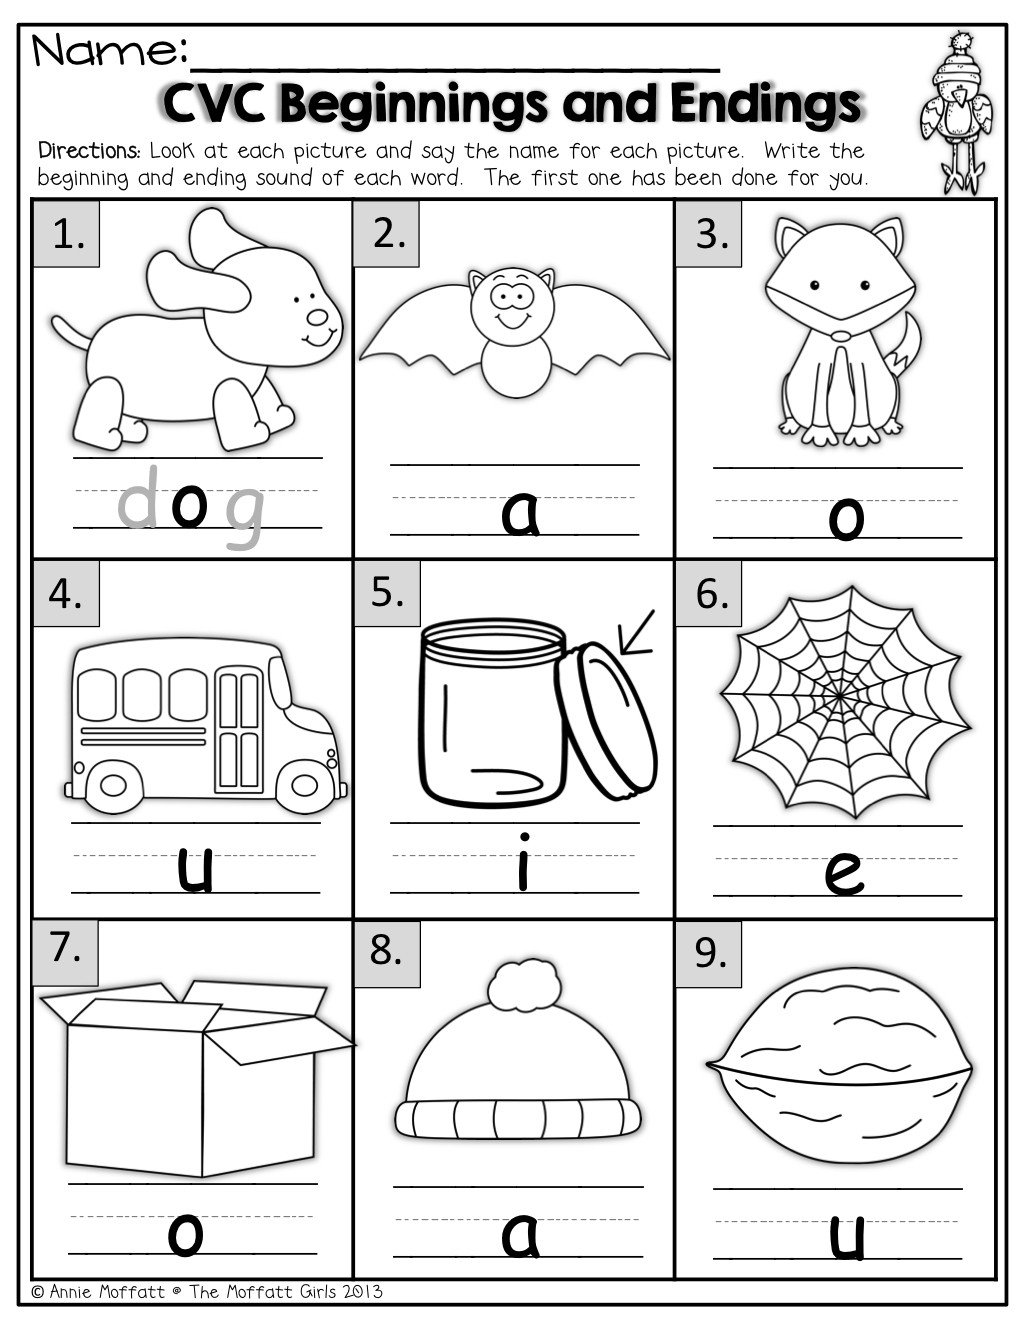 Free Ending sounds Worksheets Cvc Beginning and Ending sound Worksheet